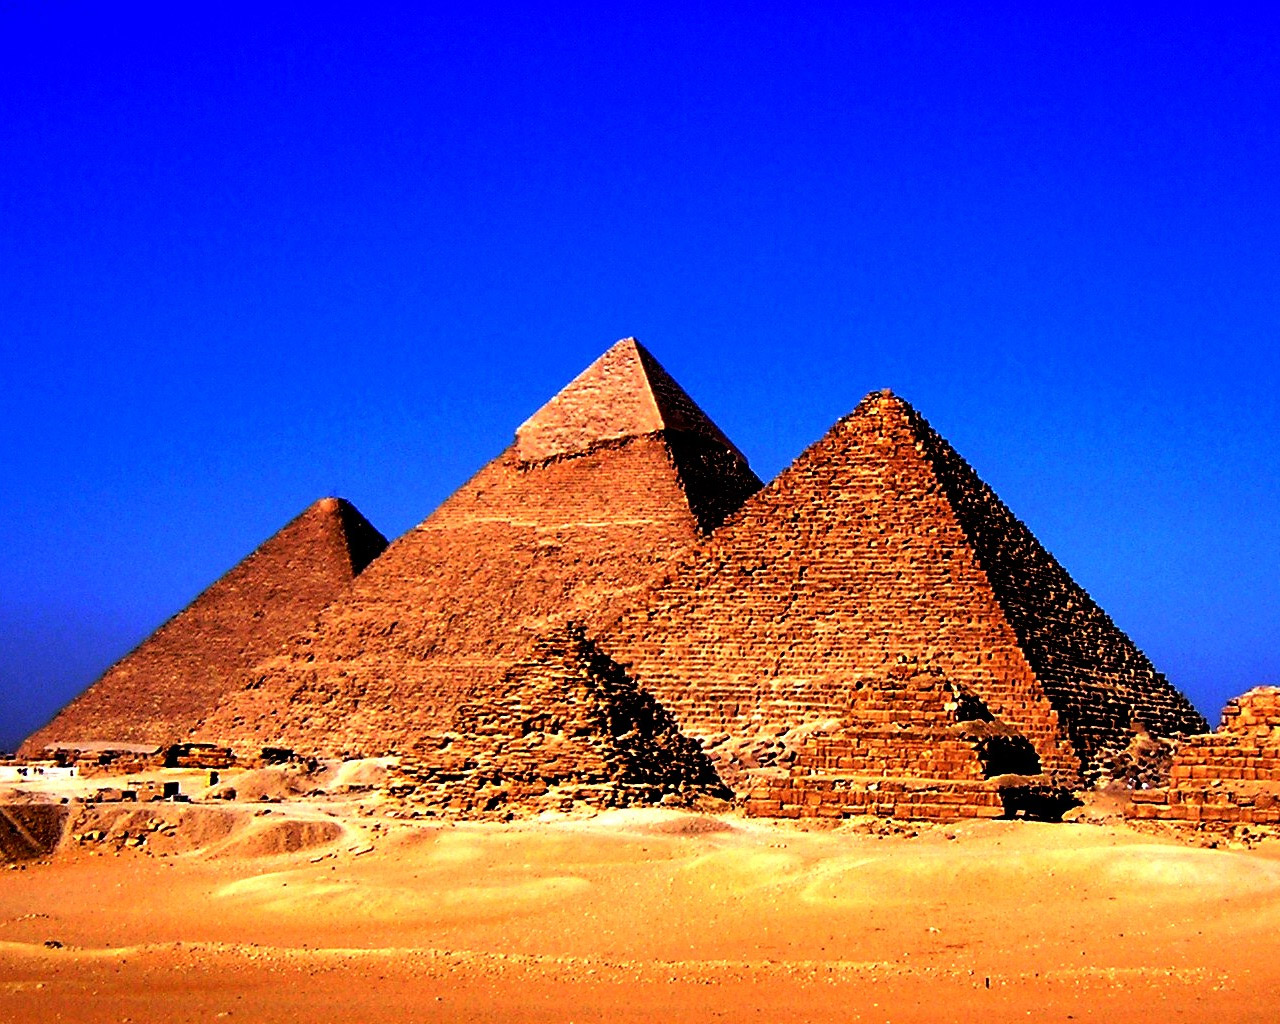 Egyptian Pyramids Wallpaper HD Backgrounds Images Pictures 1280x1024